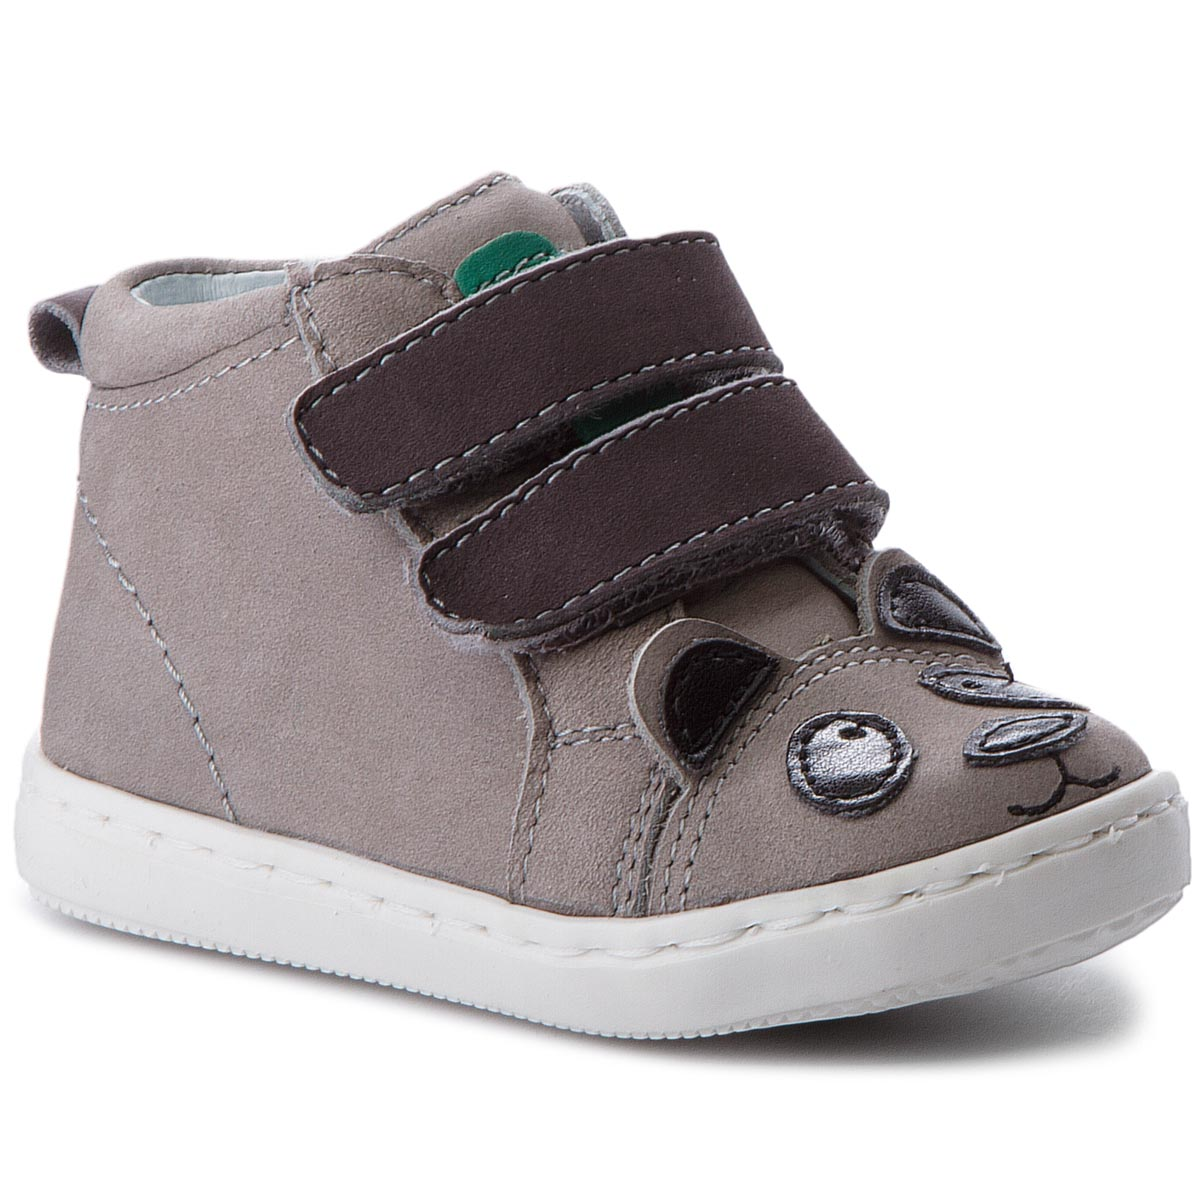 Boots MIDO - 20-23 Gris